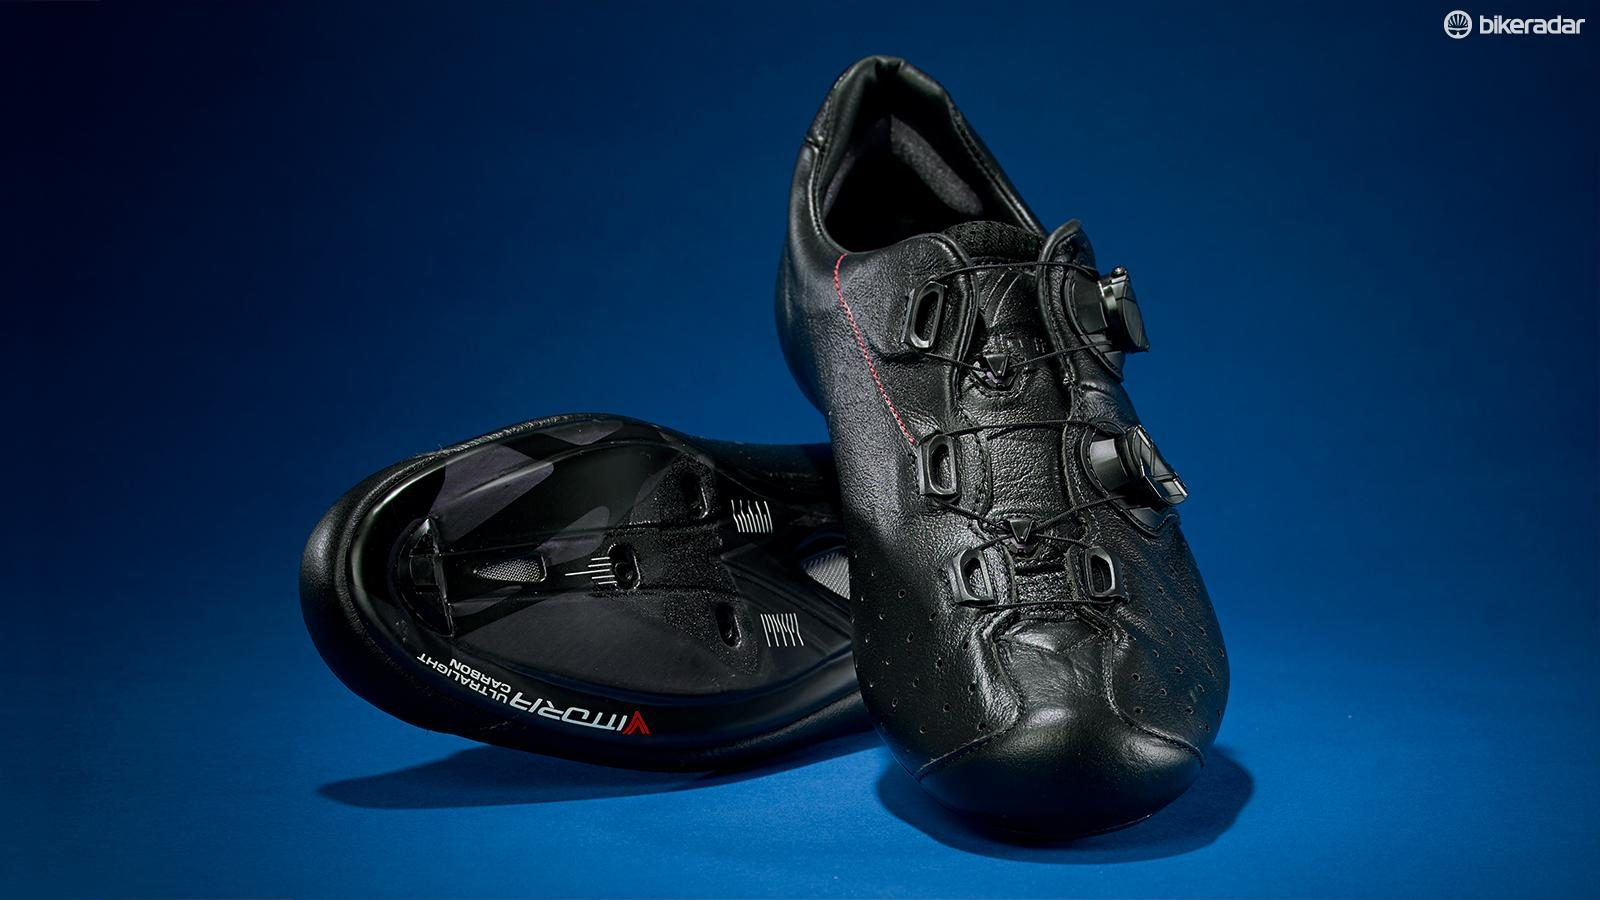 Vittoria Ace Road Cycling Shoes